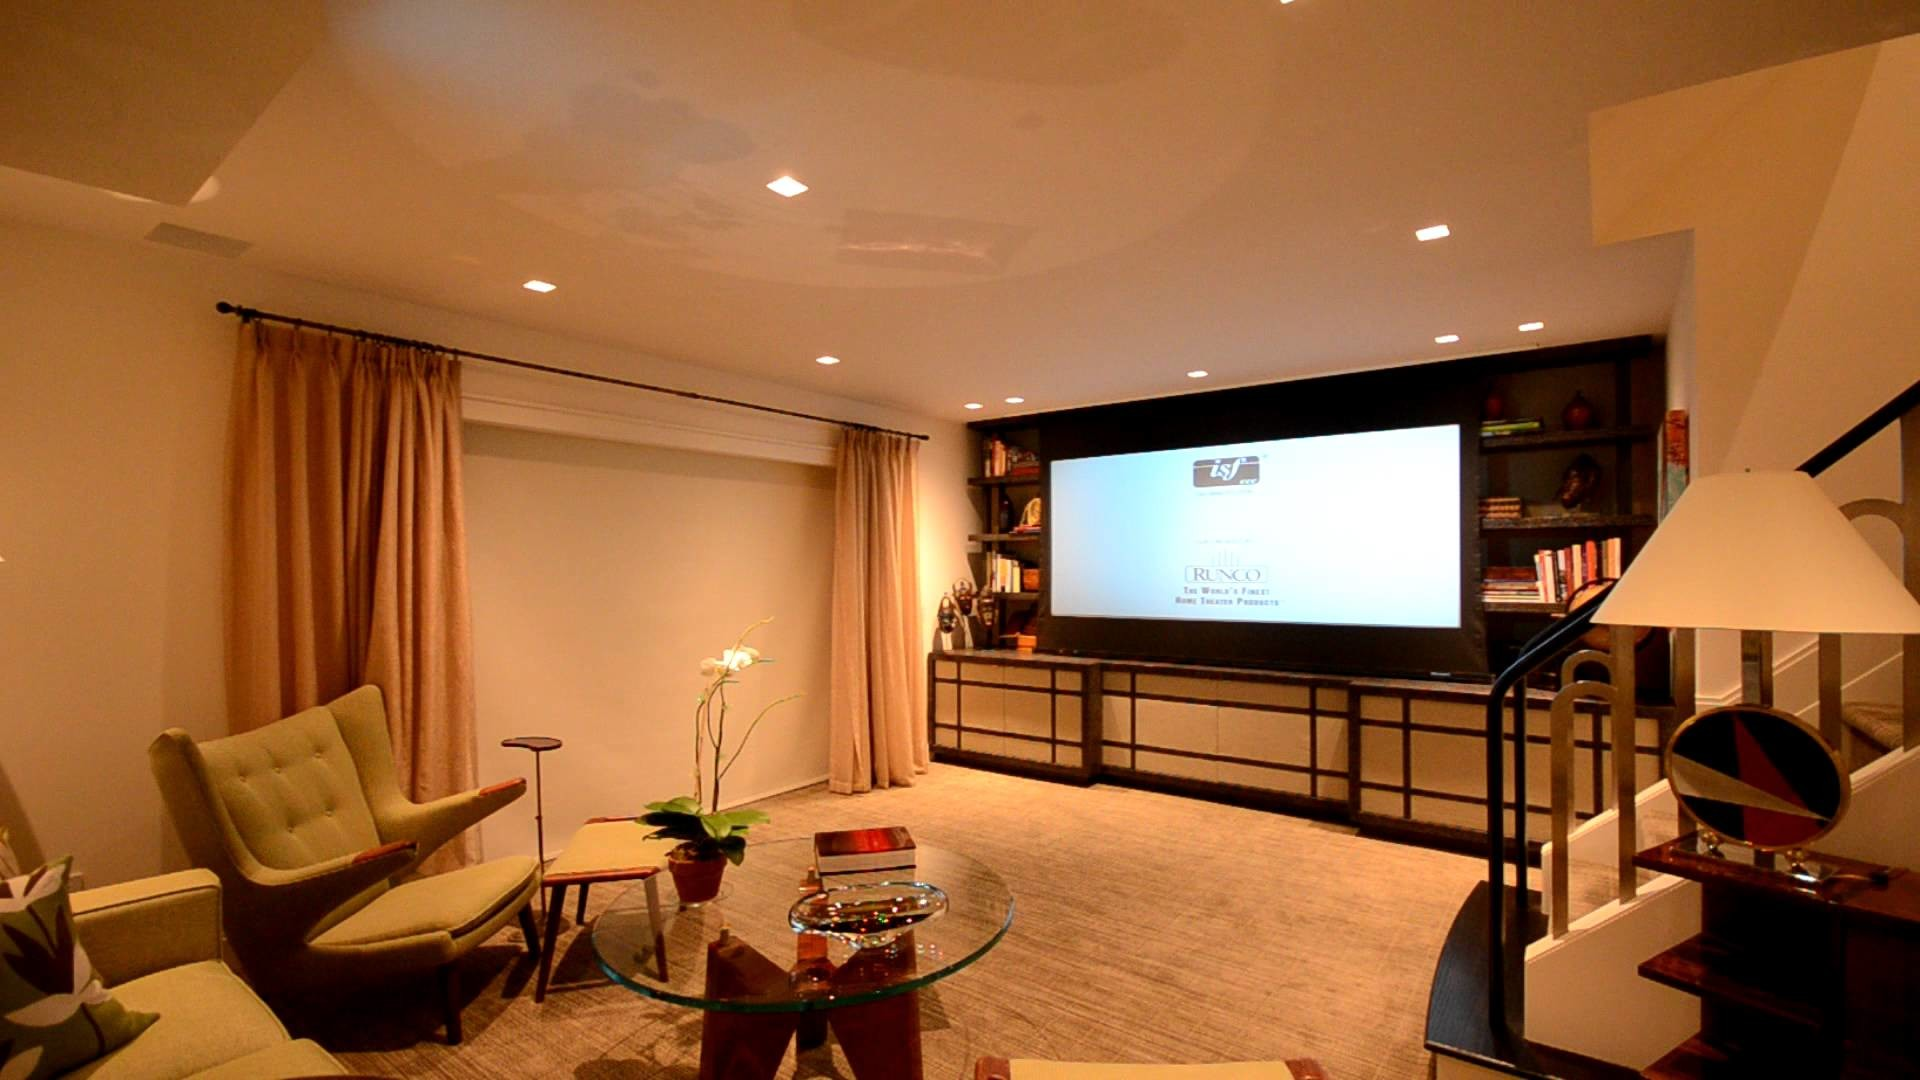 1920x1080 Media Room with Motorized Projector Lift, Motorized Screen & Automated  Shades by Crescendo Designs - YouTube